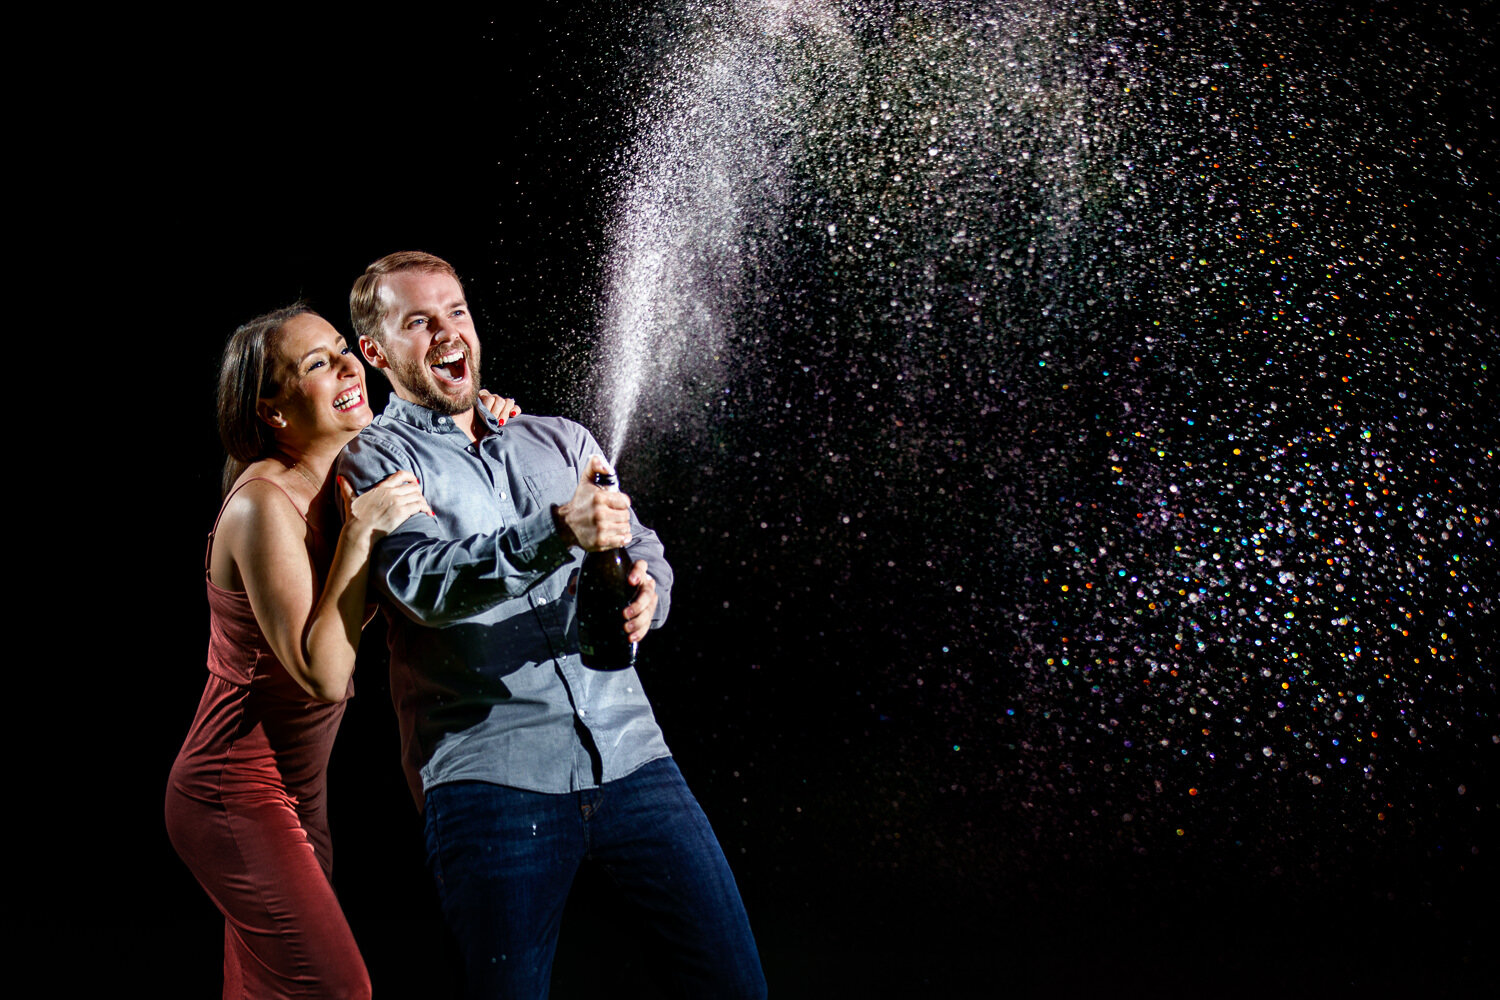 spraying champagne in engagement photos